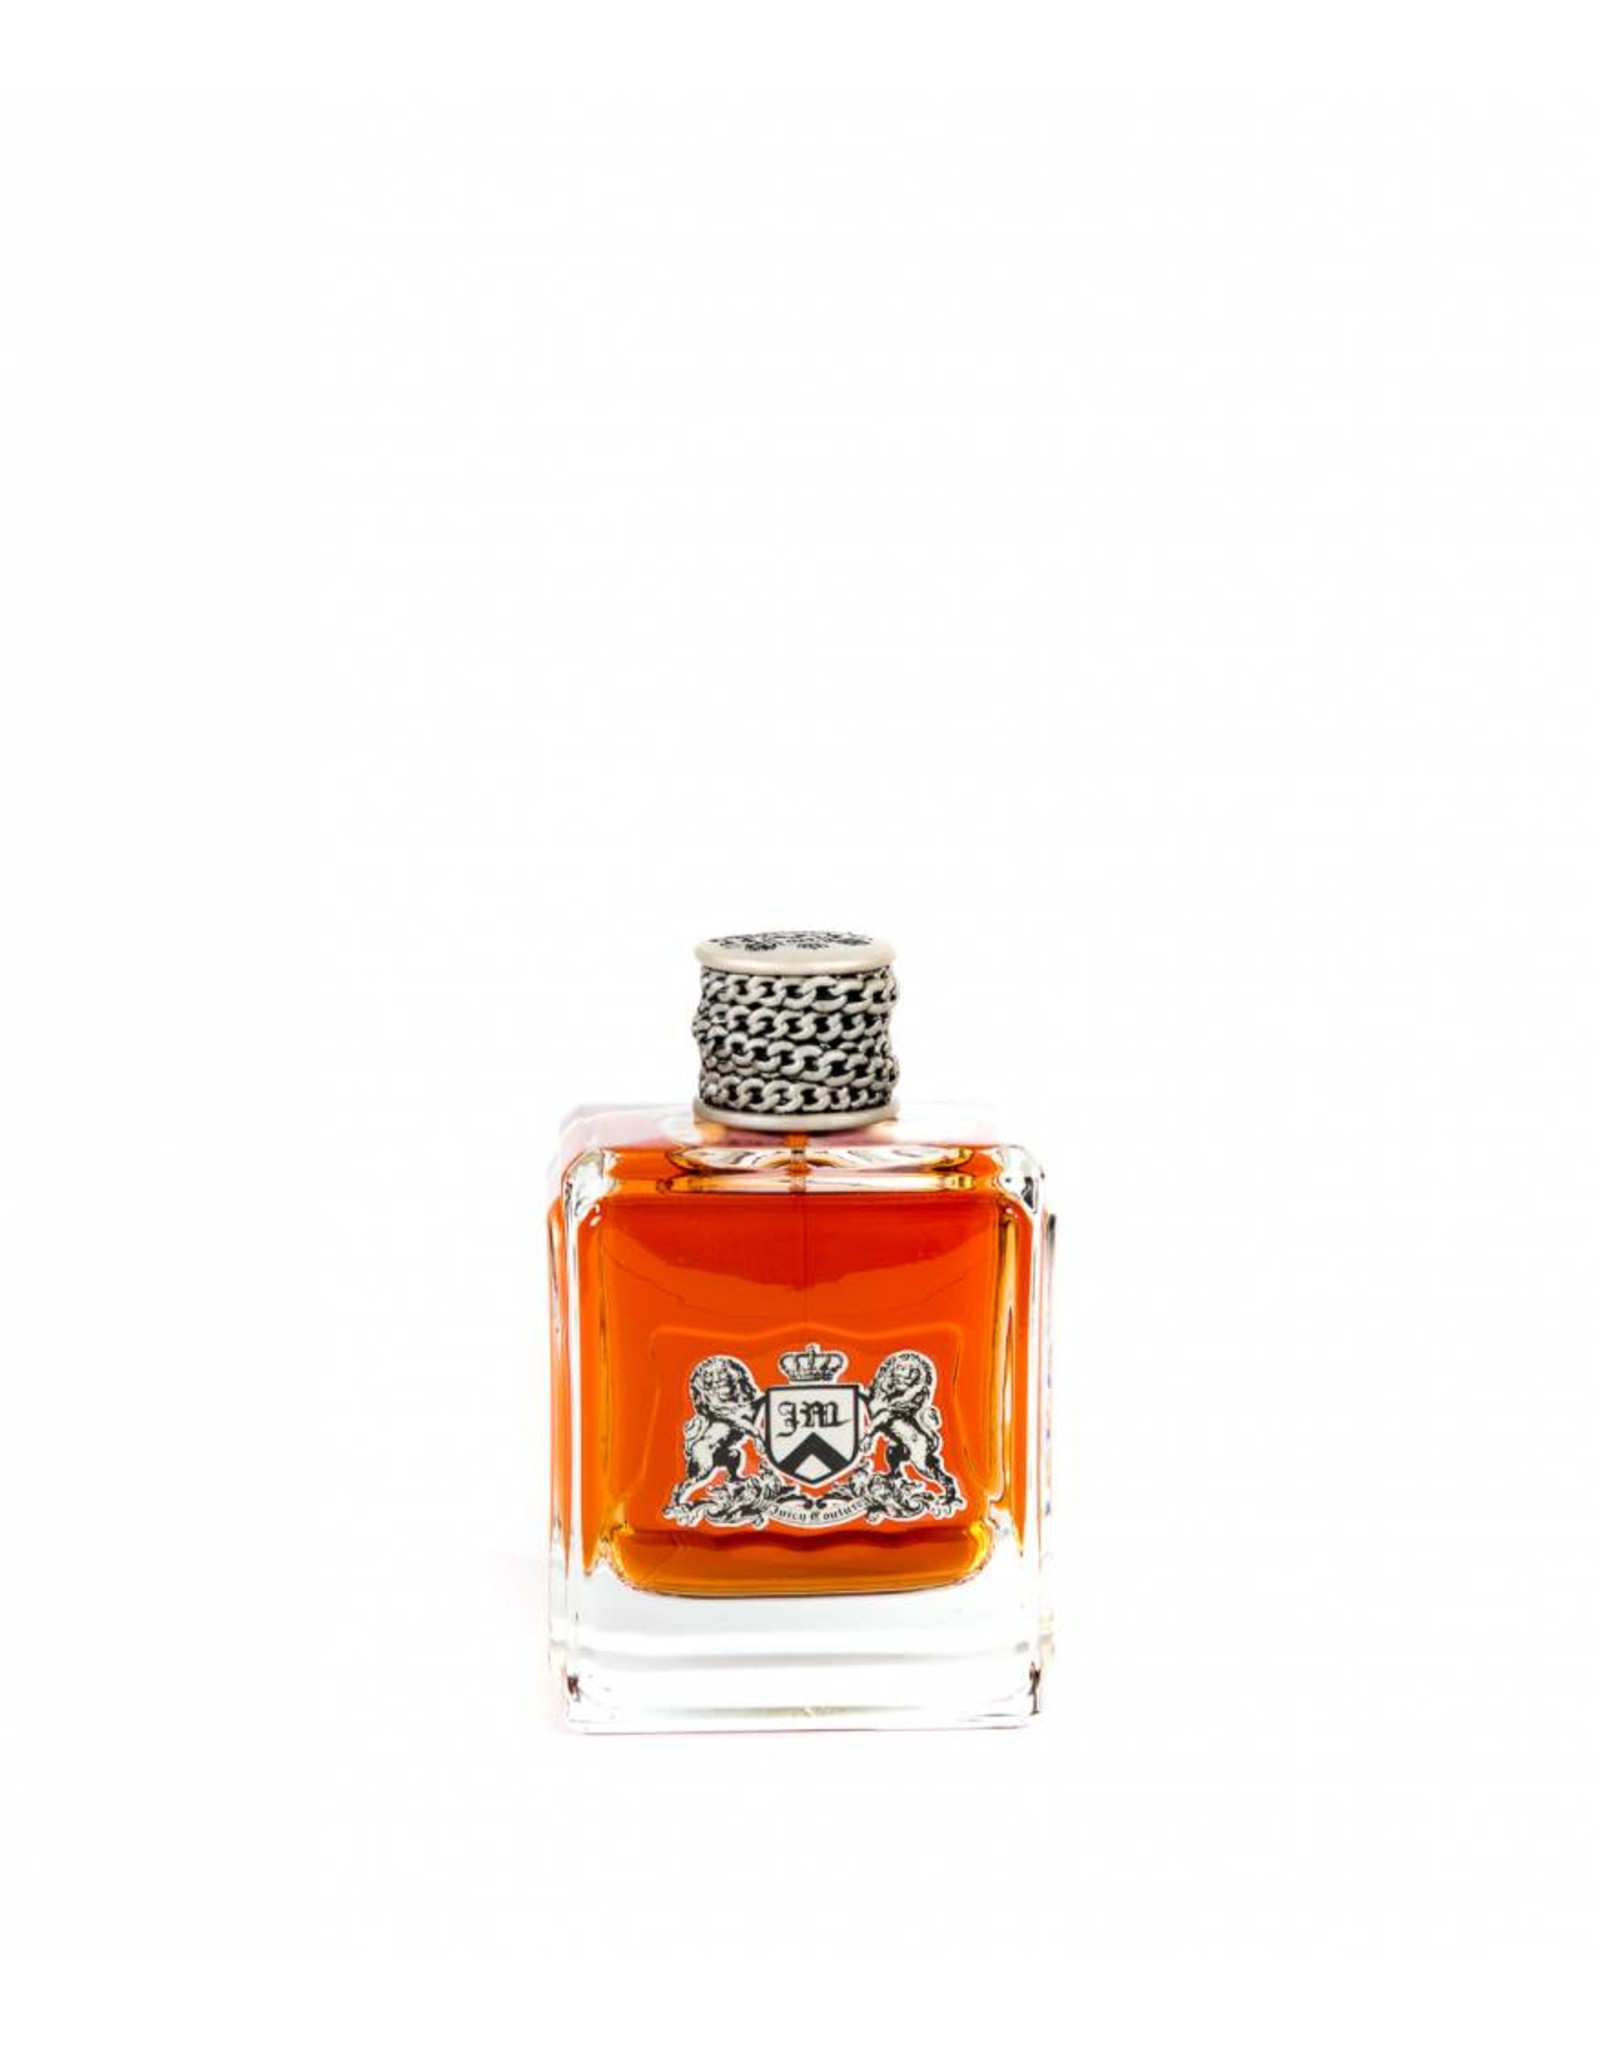 JUICY COUTURE JUICY COUTURE DIRTY ENGLISH